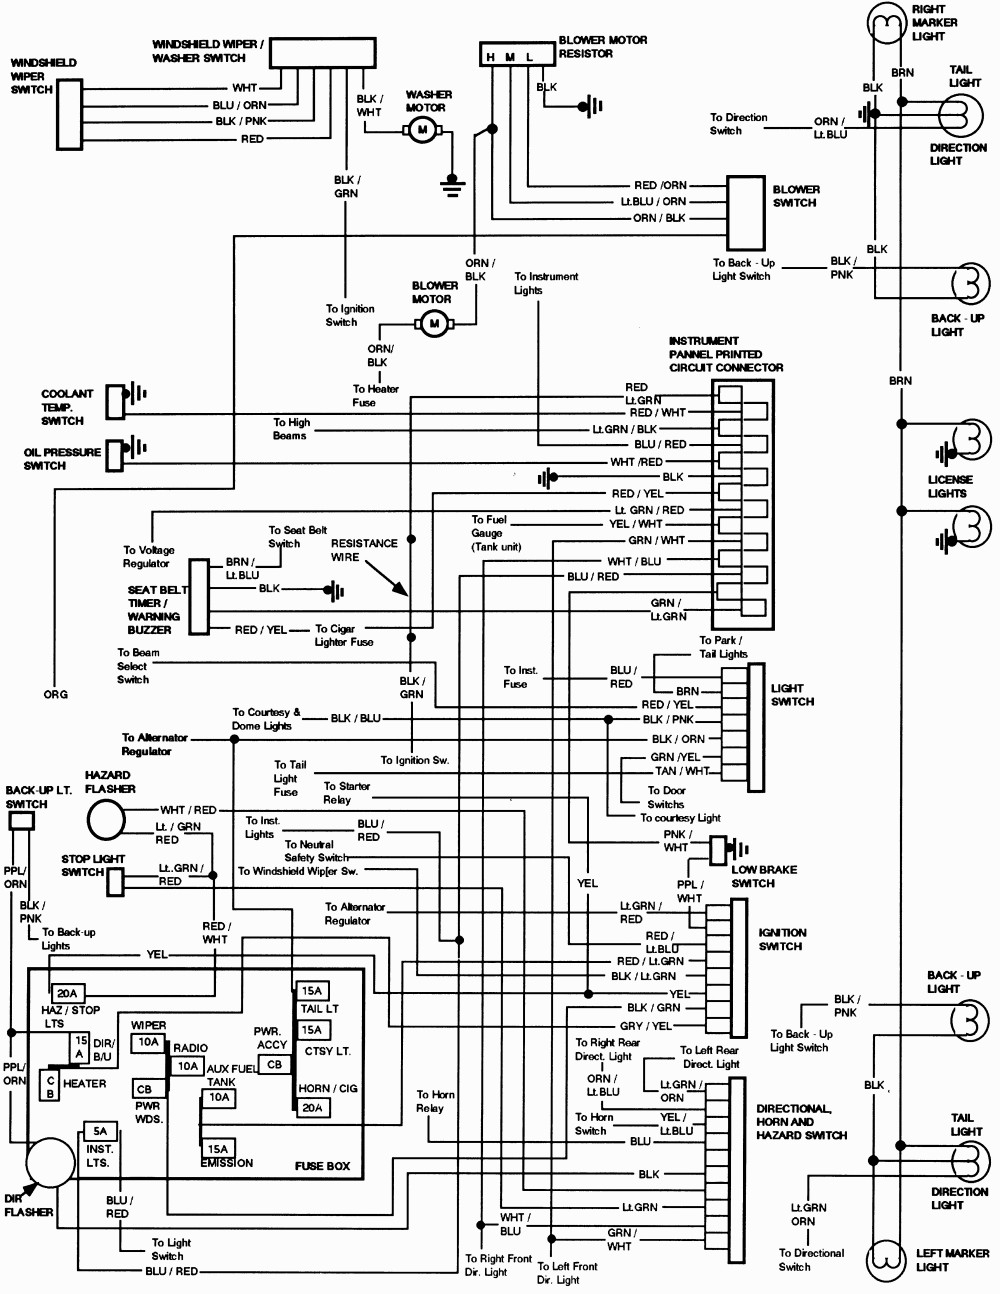 medium resolution of 95 ford f350 wiring diagram wiring diagram inside tail light wiring diagram for 95 ford f 250